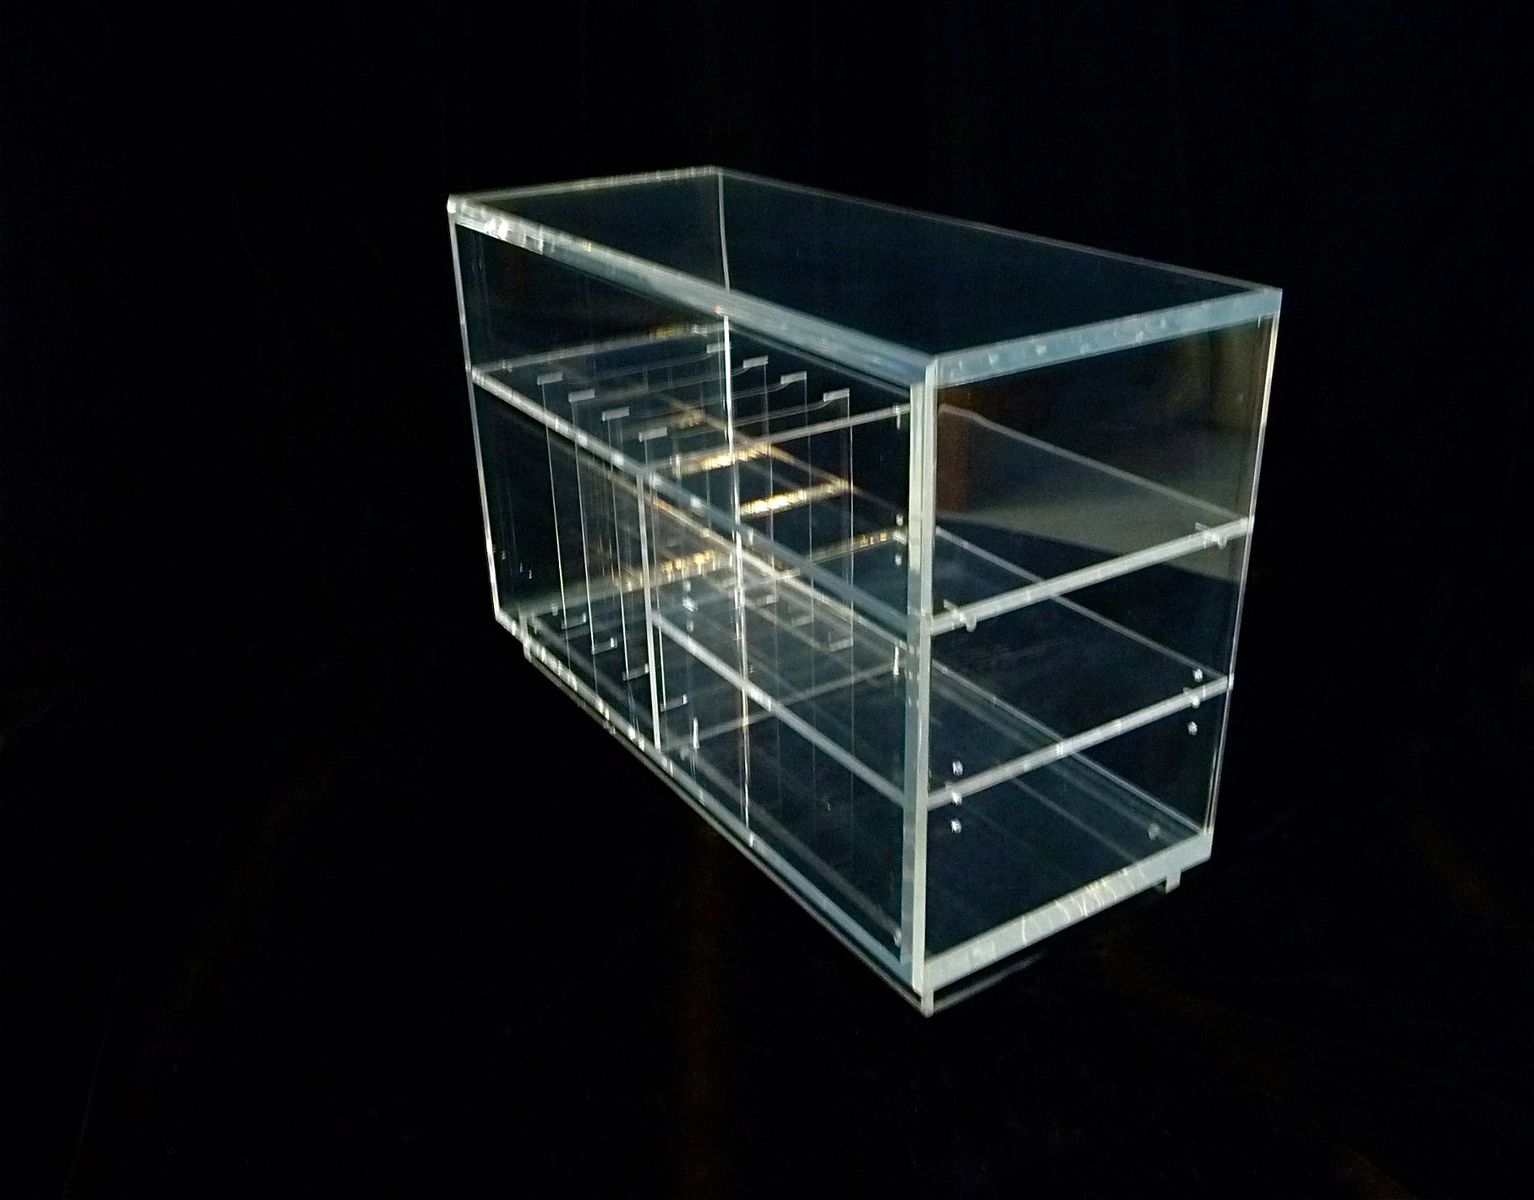 plexiglas hifi shelf 1960s for sale at pamono. Black Bedroom Furniture Sets. Home Design Ideas